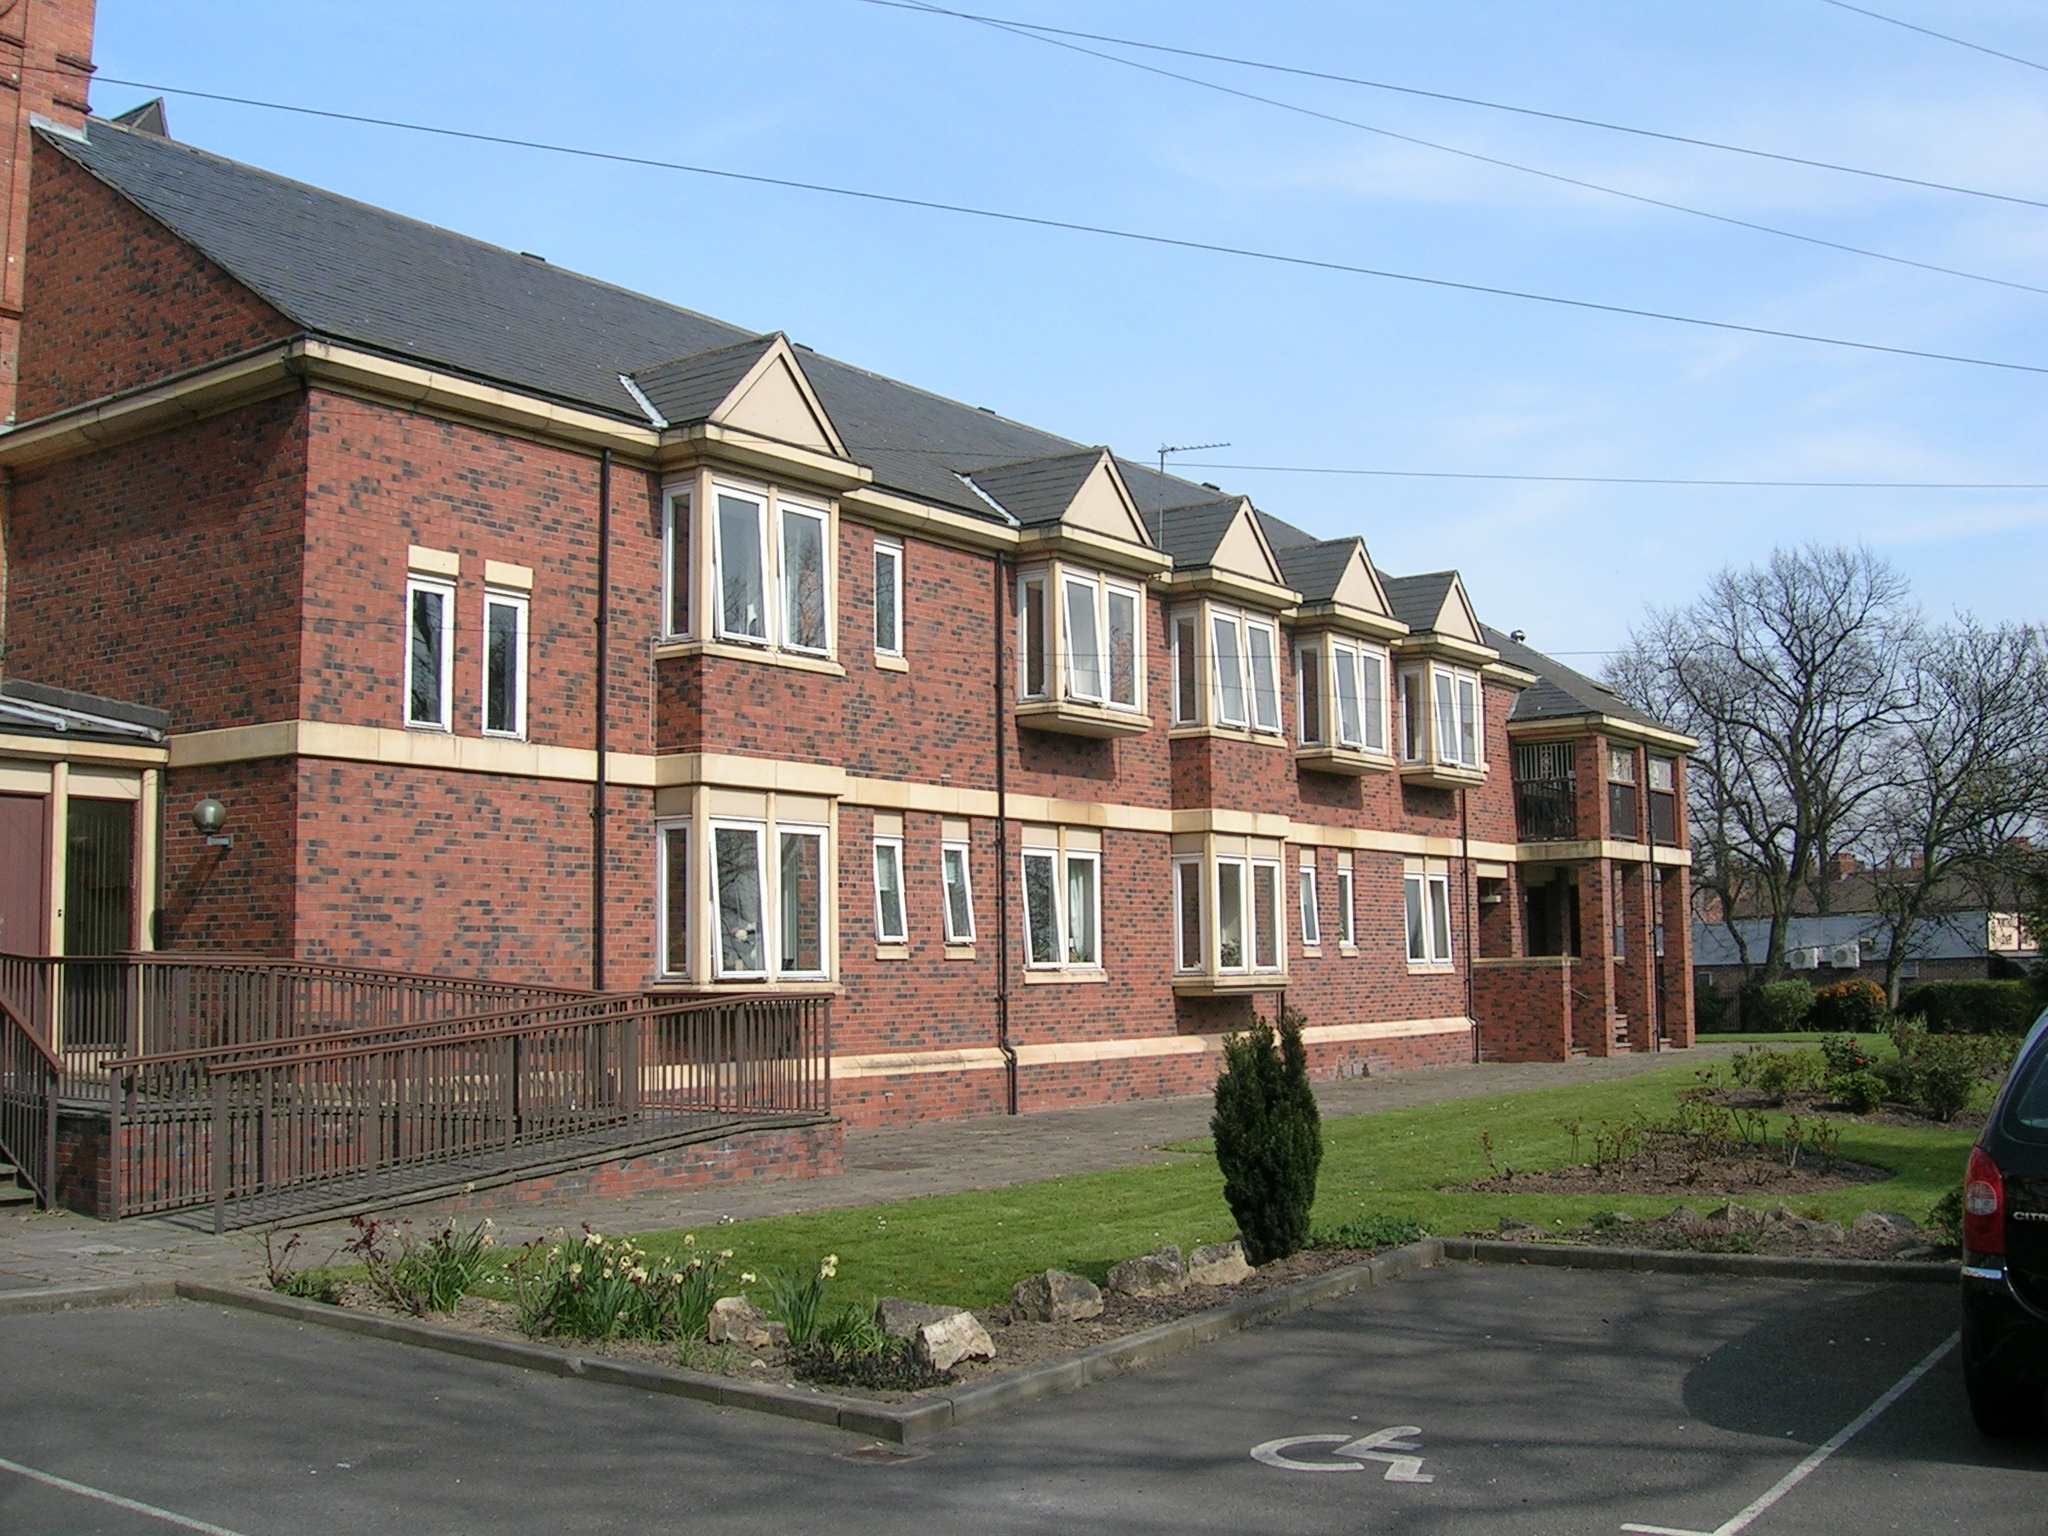 Regent House (part of Victoria House Care Centre): Key Healthcare is dedicated to caring for elderly residents in safe. We have multiple dementia care homes including our care home middlesbrough, our care home St. Helen and care home saltburn. We excel in monitoring and improving care levels.